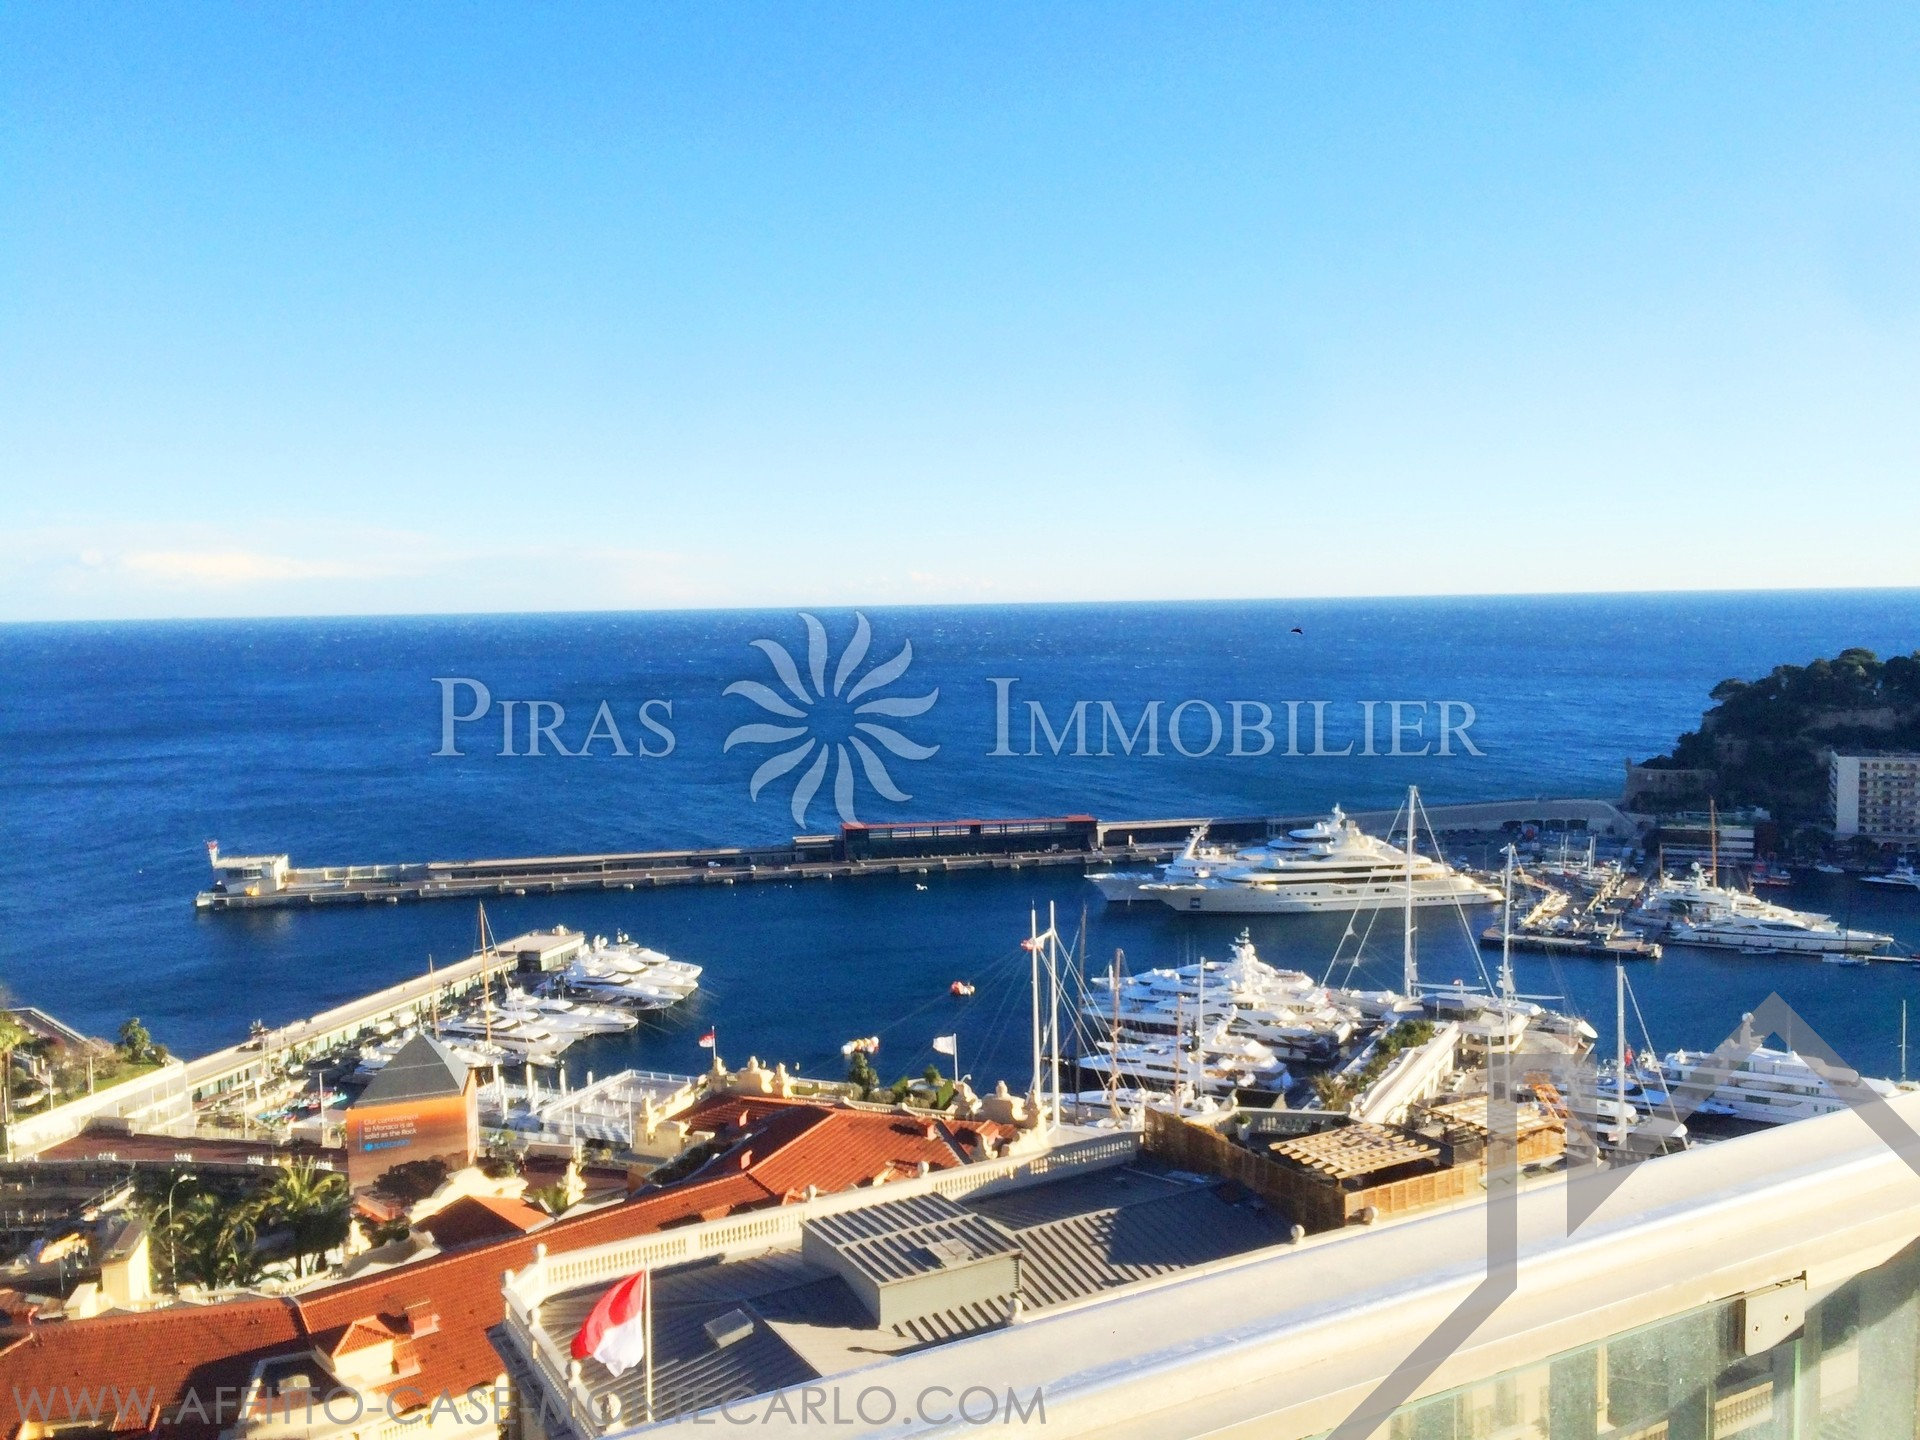 Sun Tower - Casino Square - Apartment 4 Bedrooms - Apartments for rent in Monaco